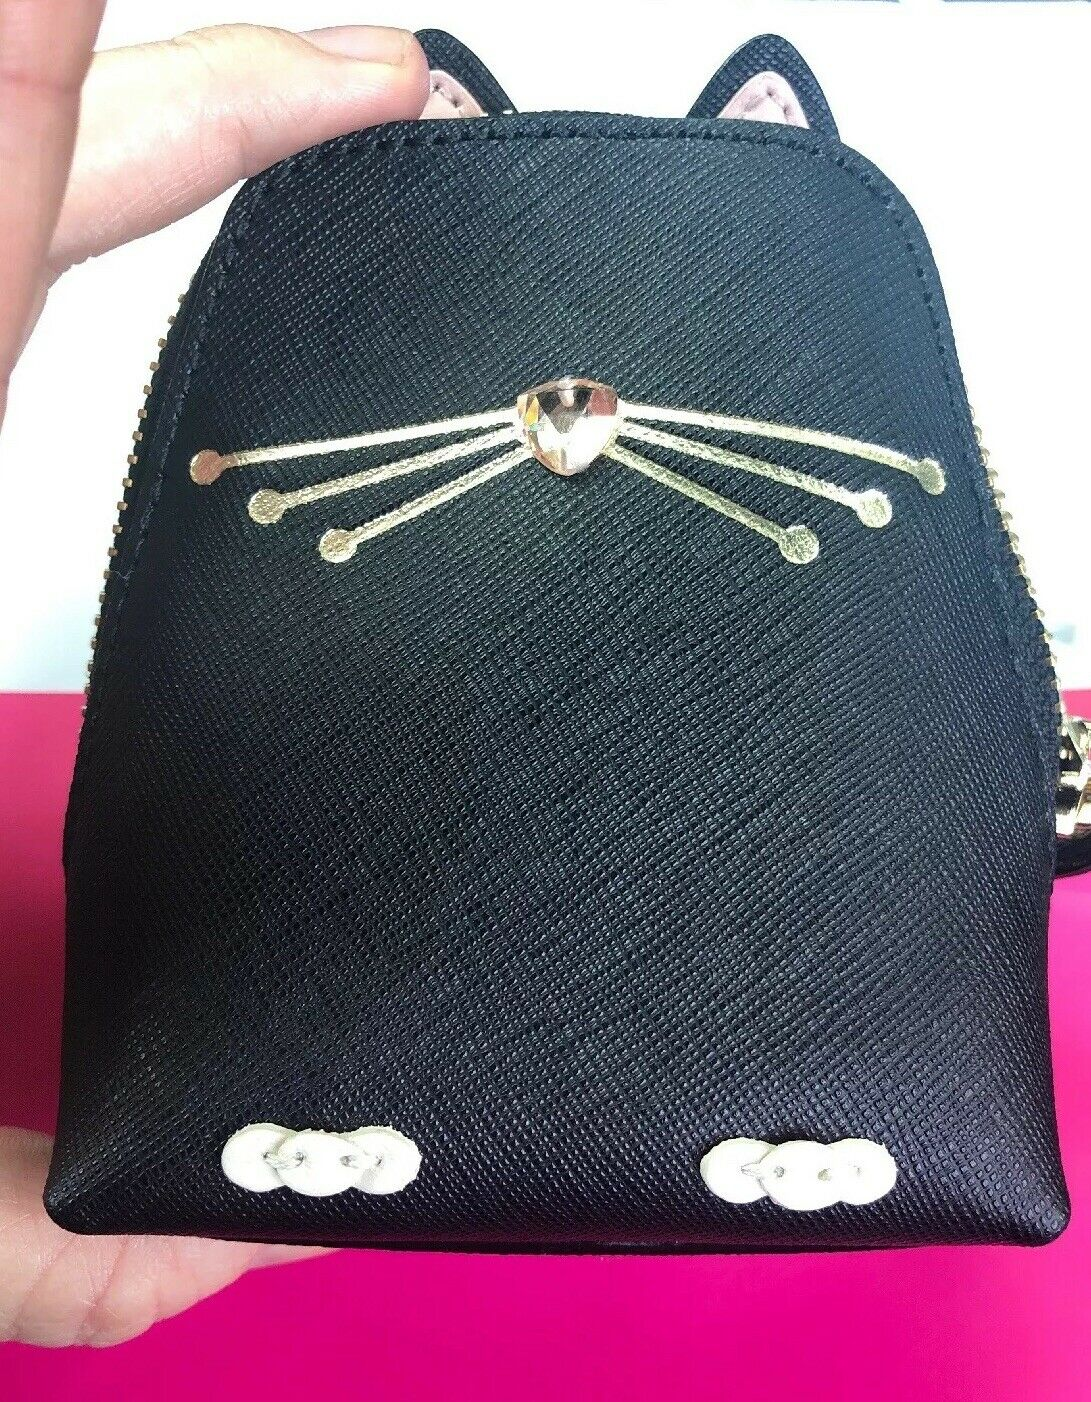 NEW Kate Spade New York Black Cat Jazz Things Up Coin Purse-NWT Just Out!